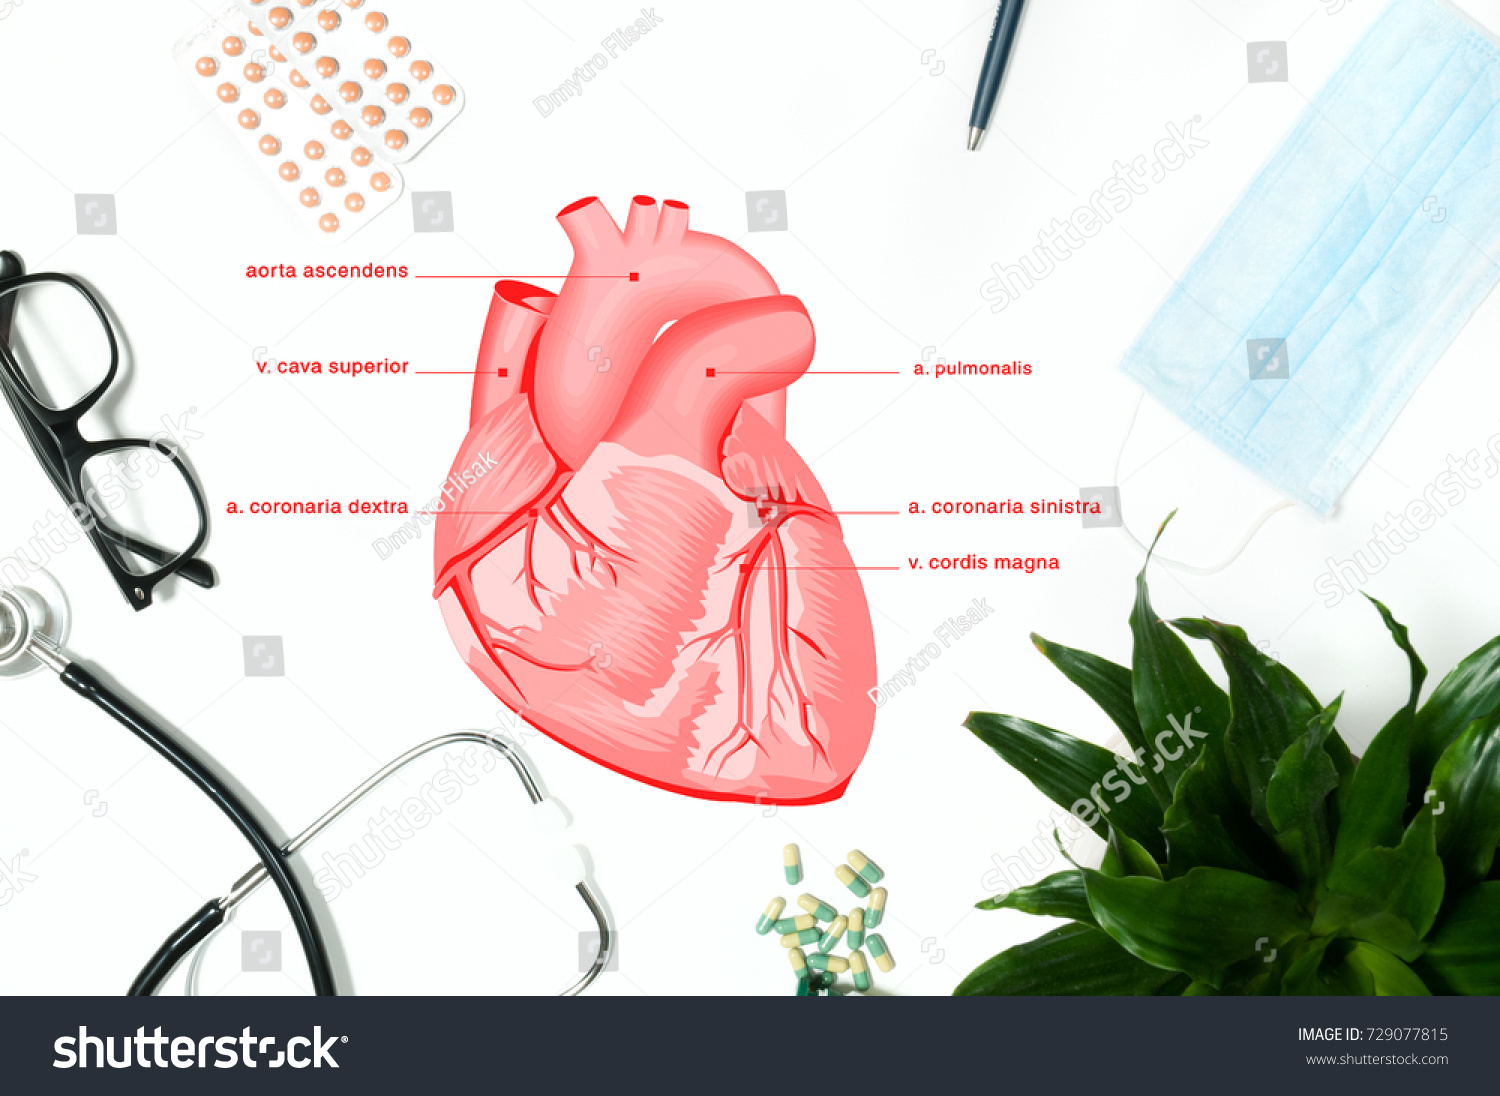 Anatomy Workplace Doctor Stethoscope Medical Items Stock Photo ...